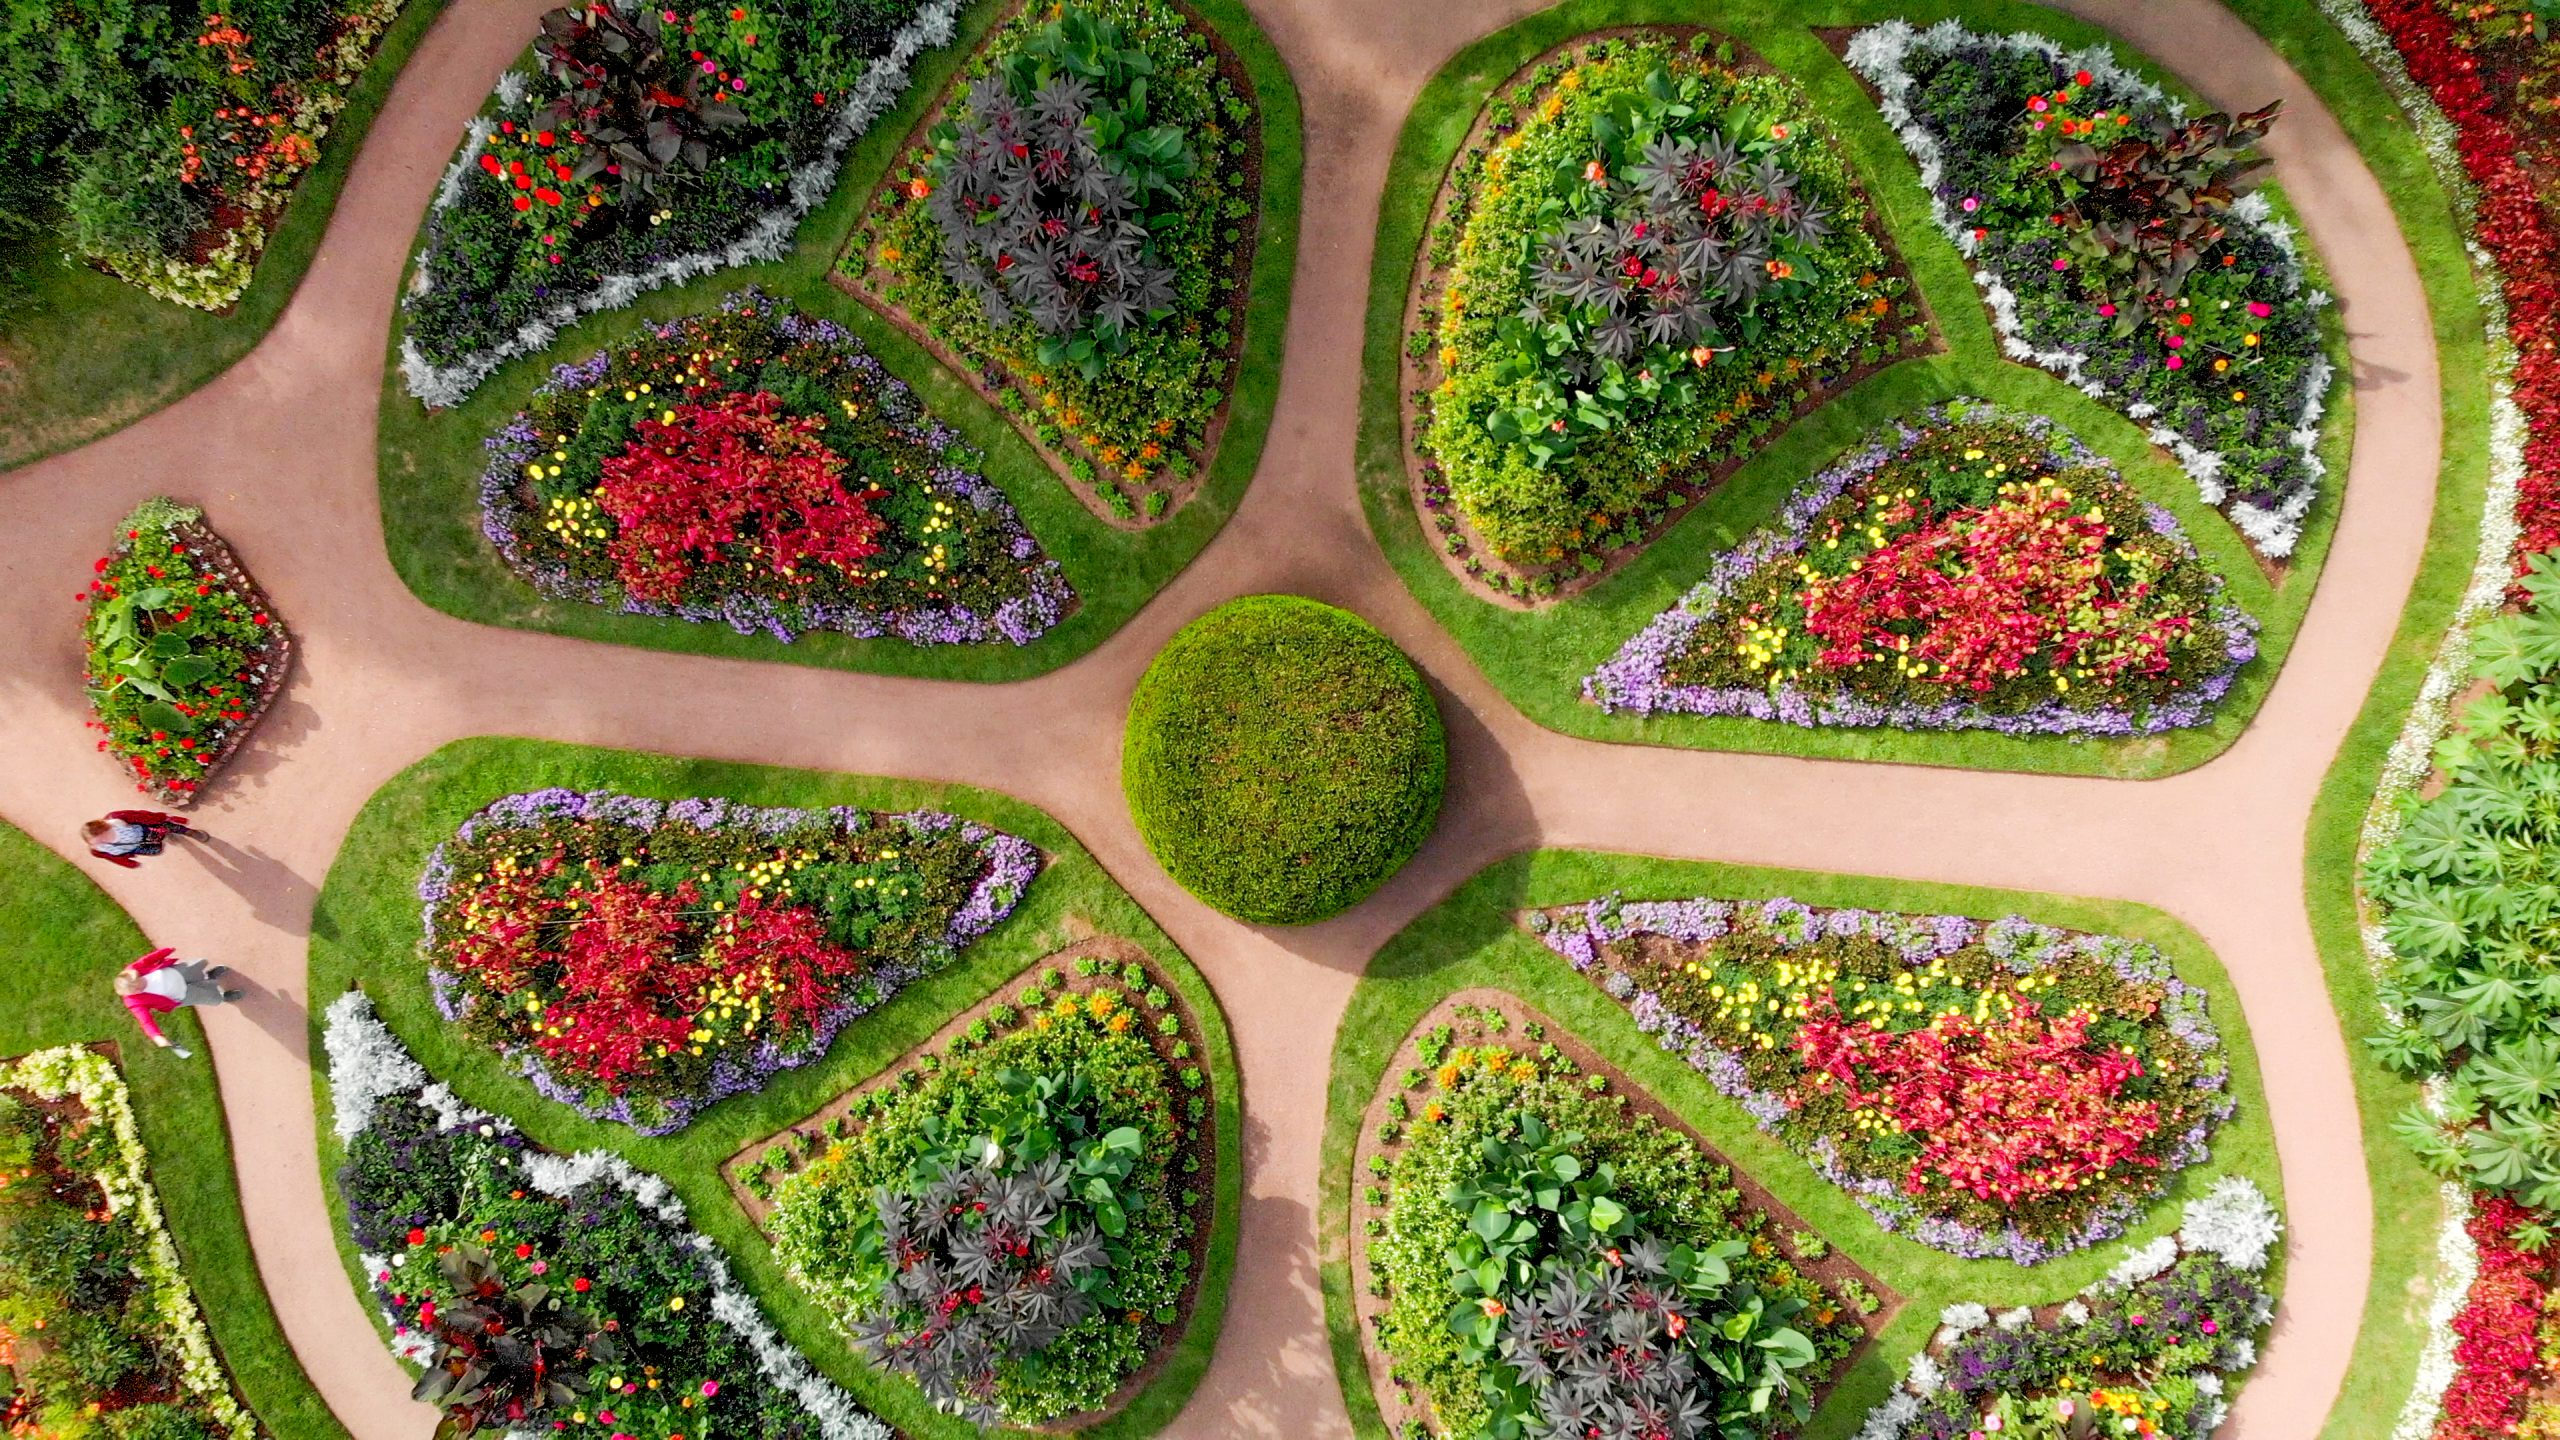 Aerial view of a portion of the Annapolis Royal Nova Scotia decorative gardens